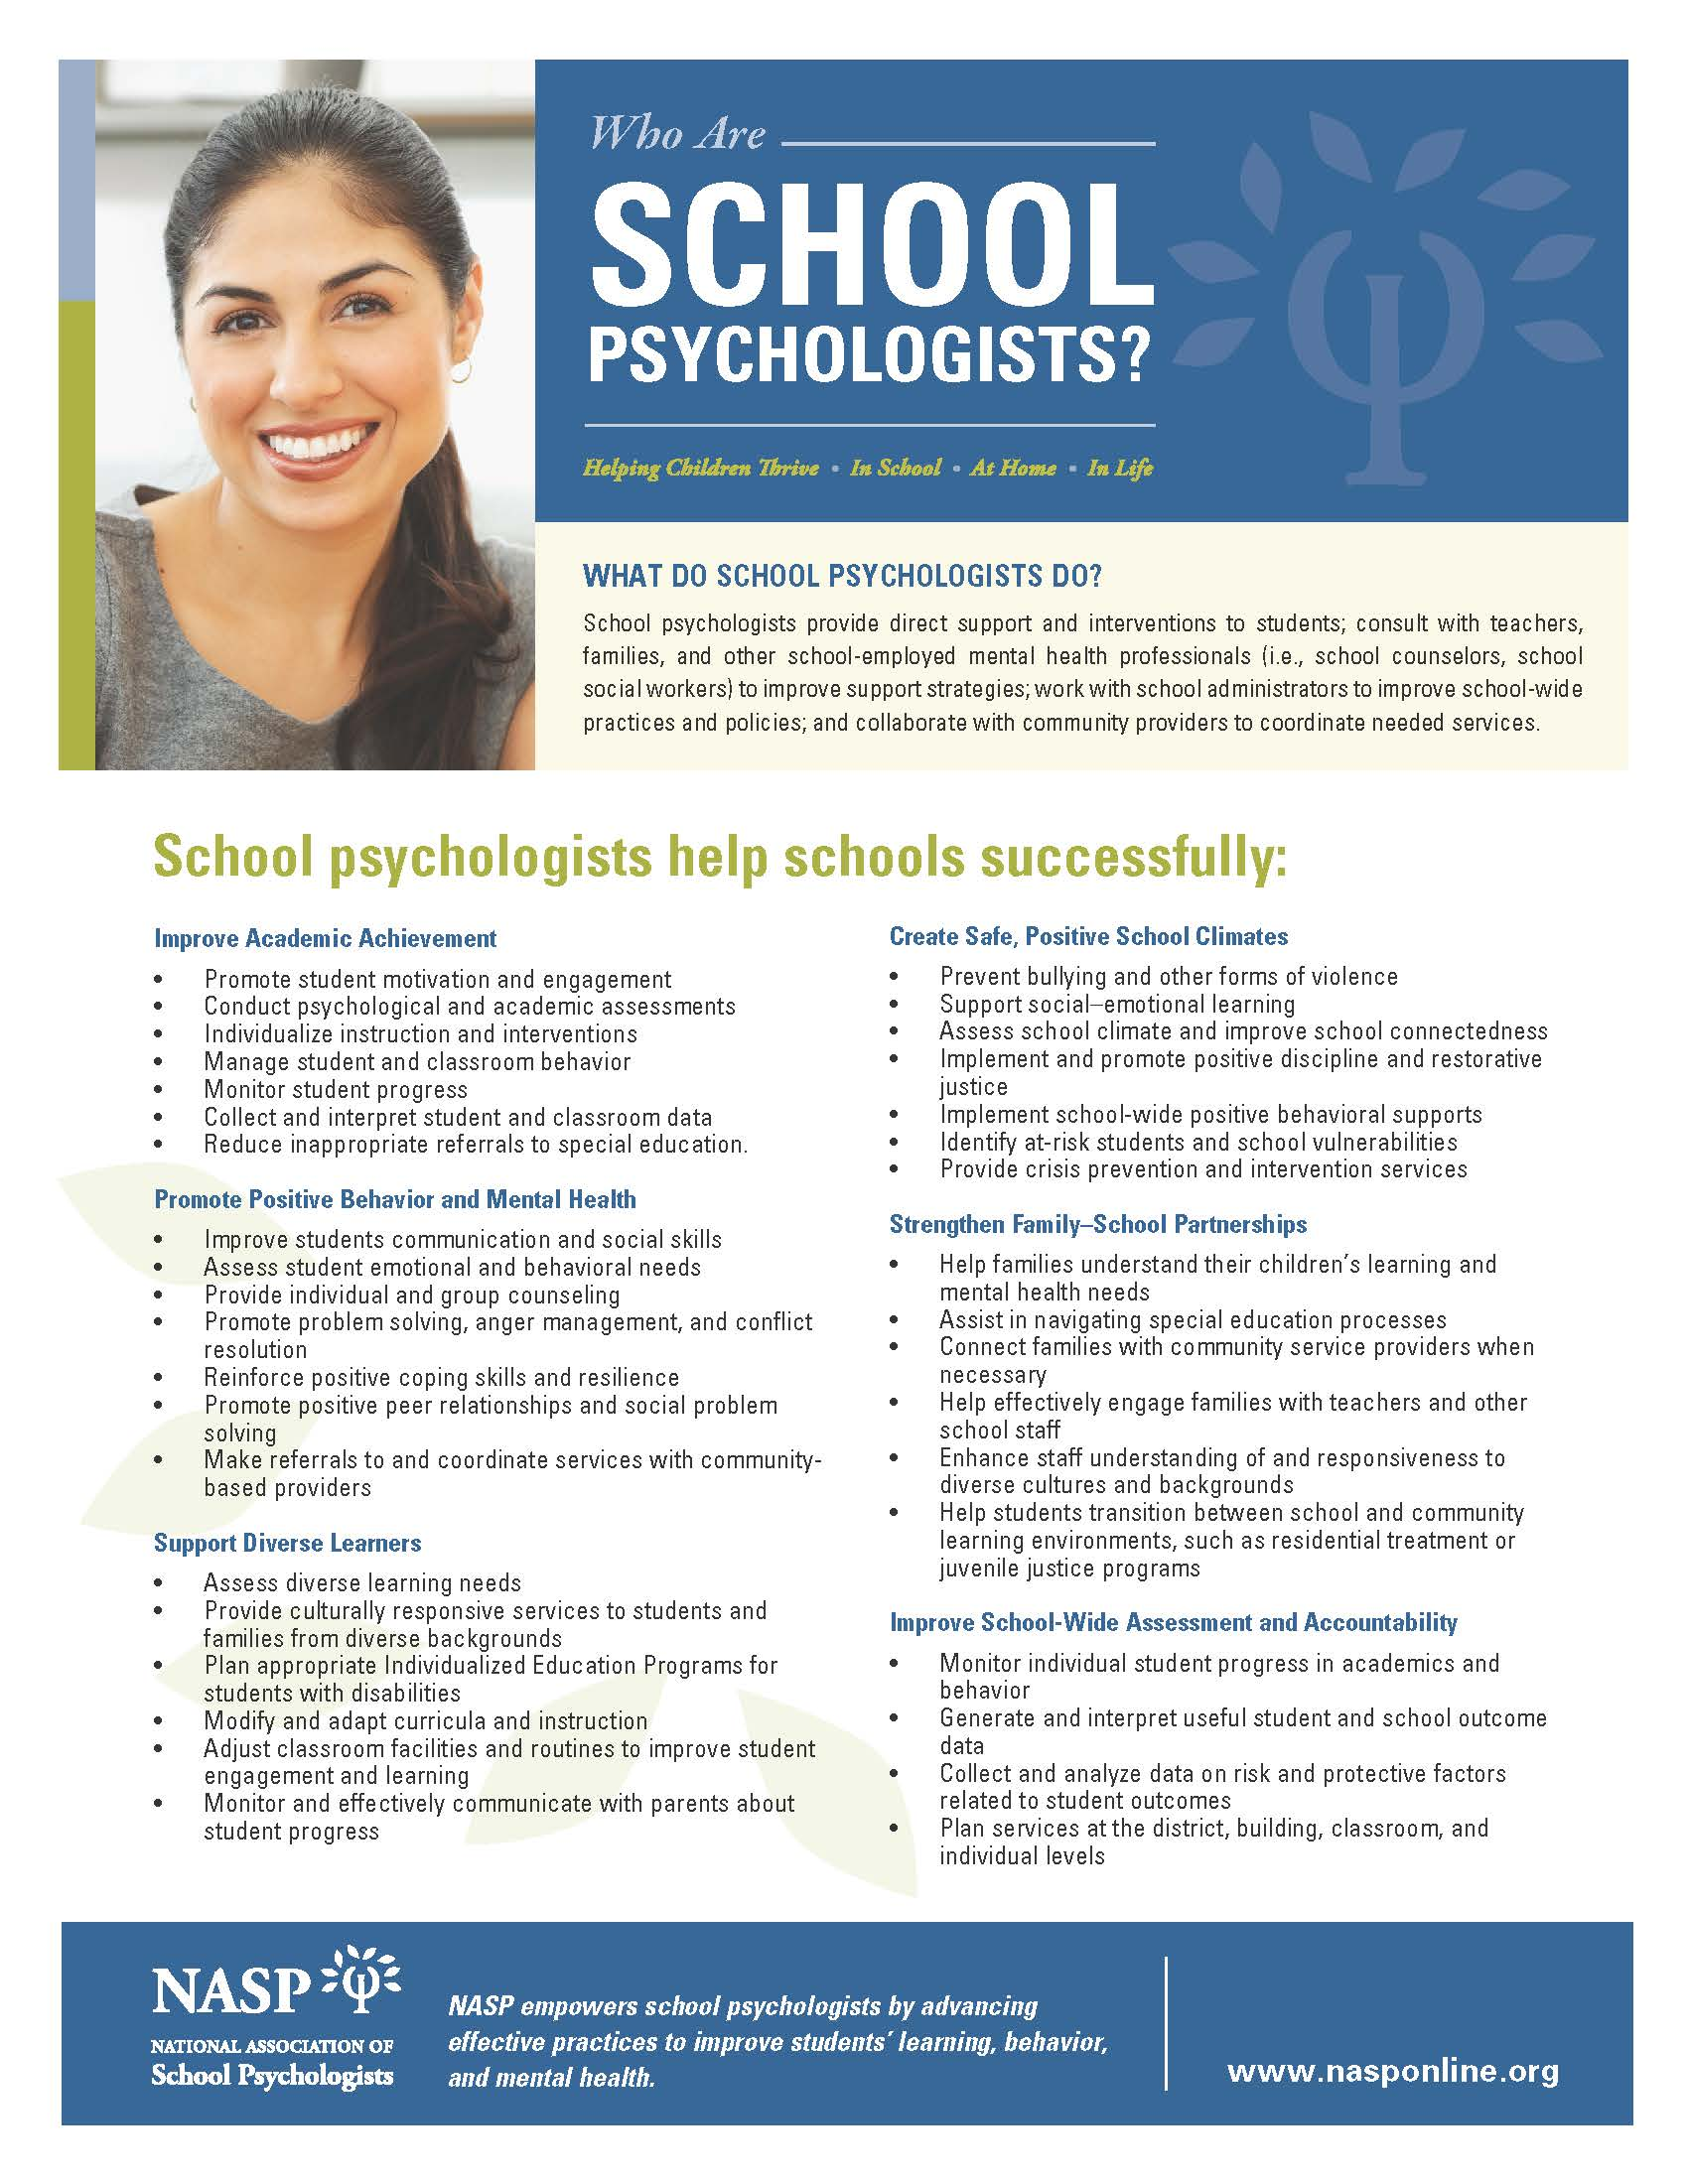 How many years of schooling does it take to be a child psychologist?